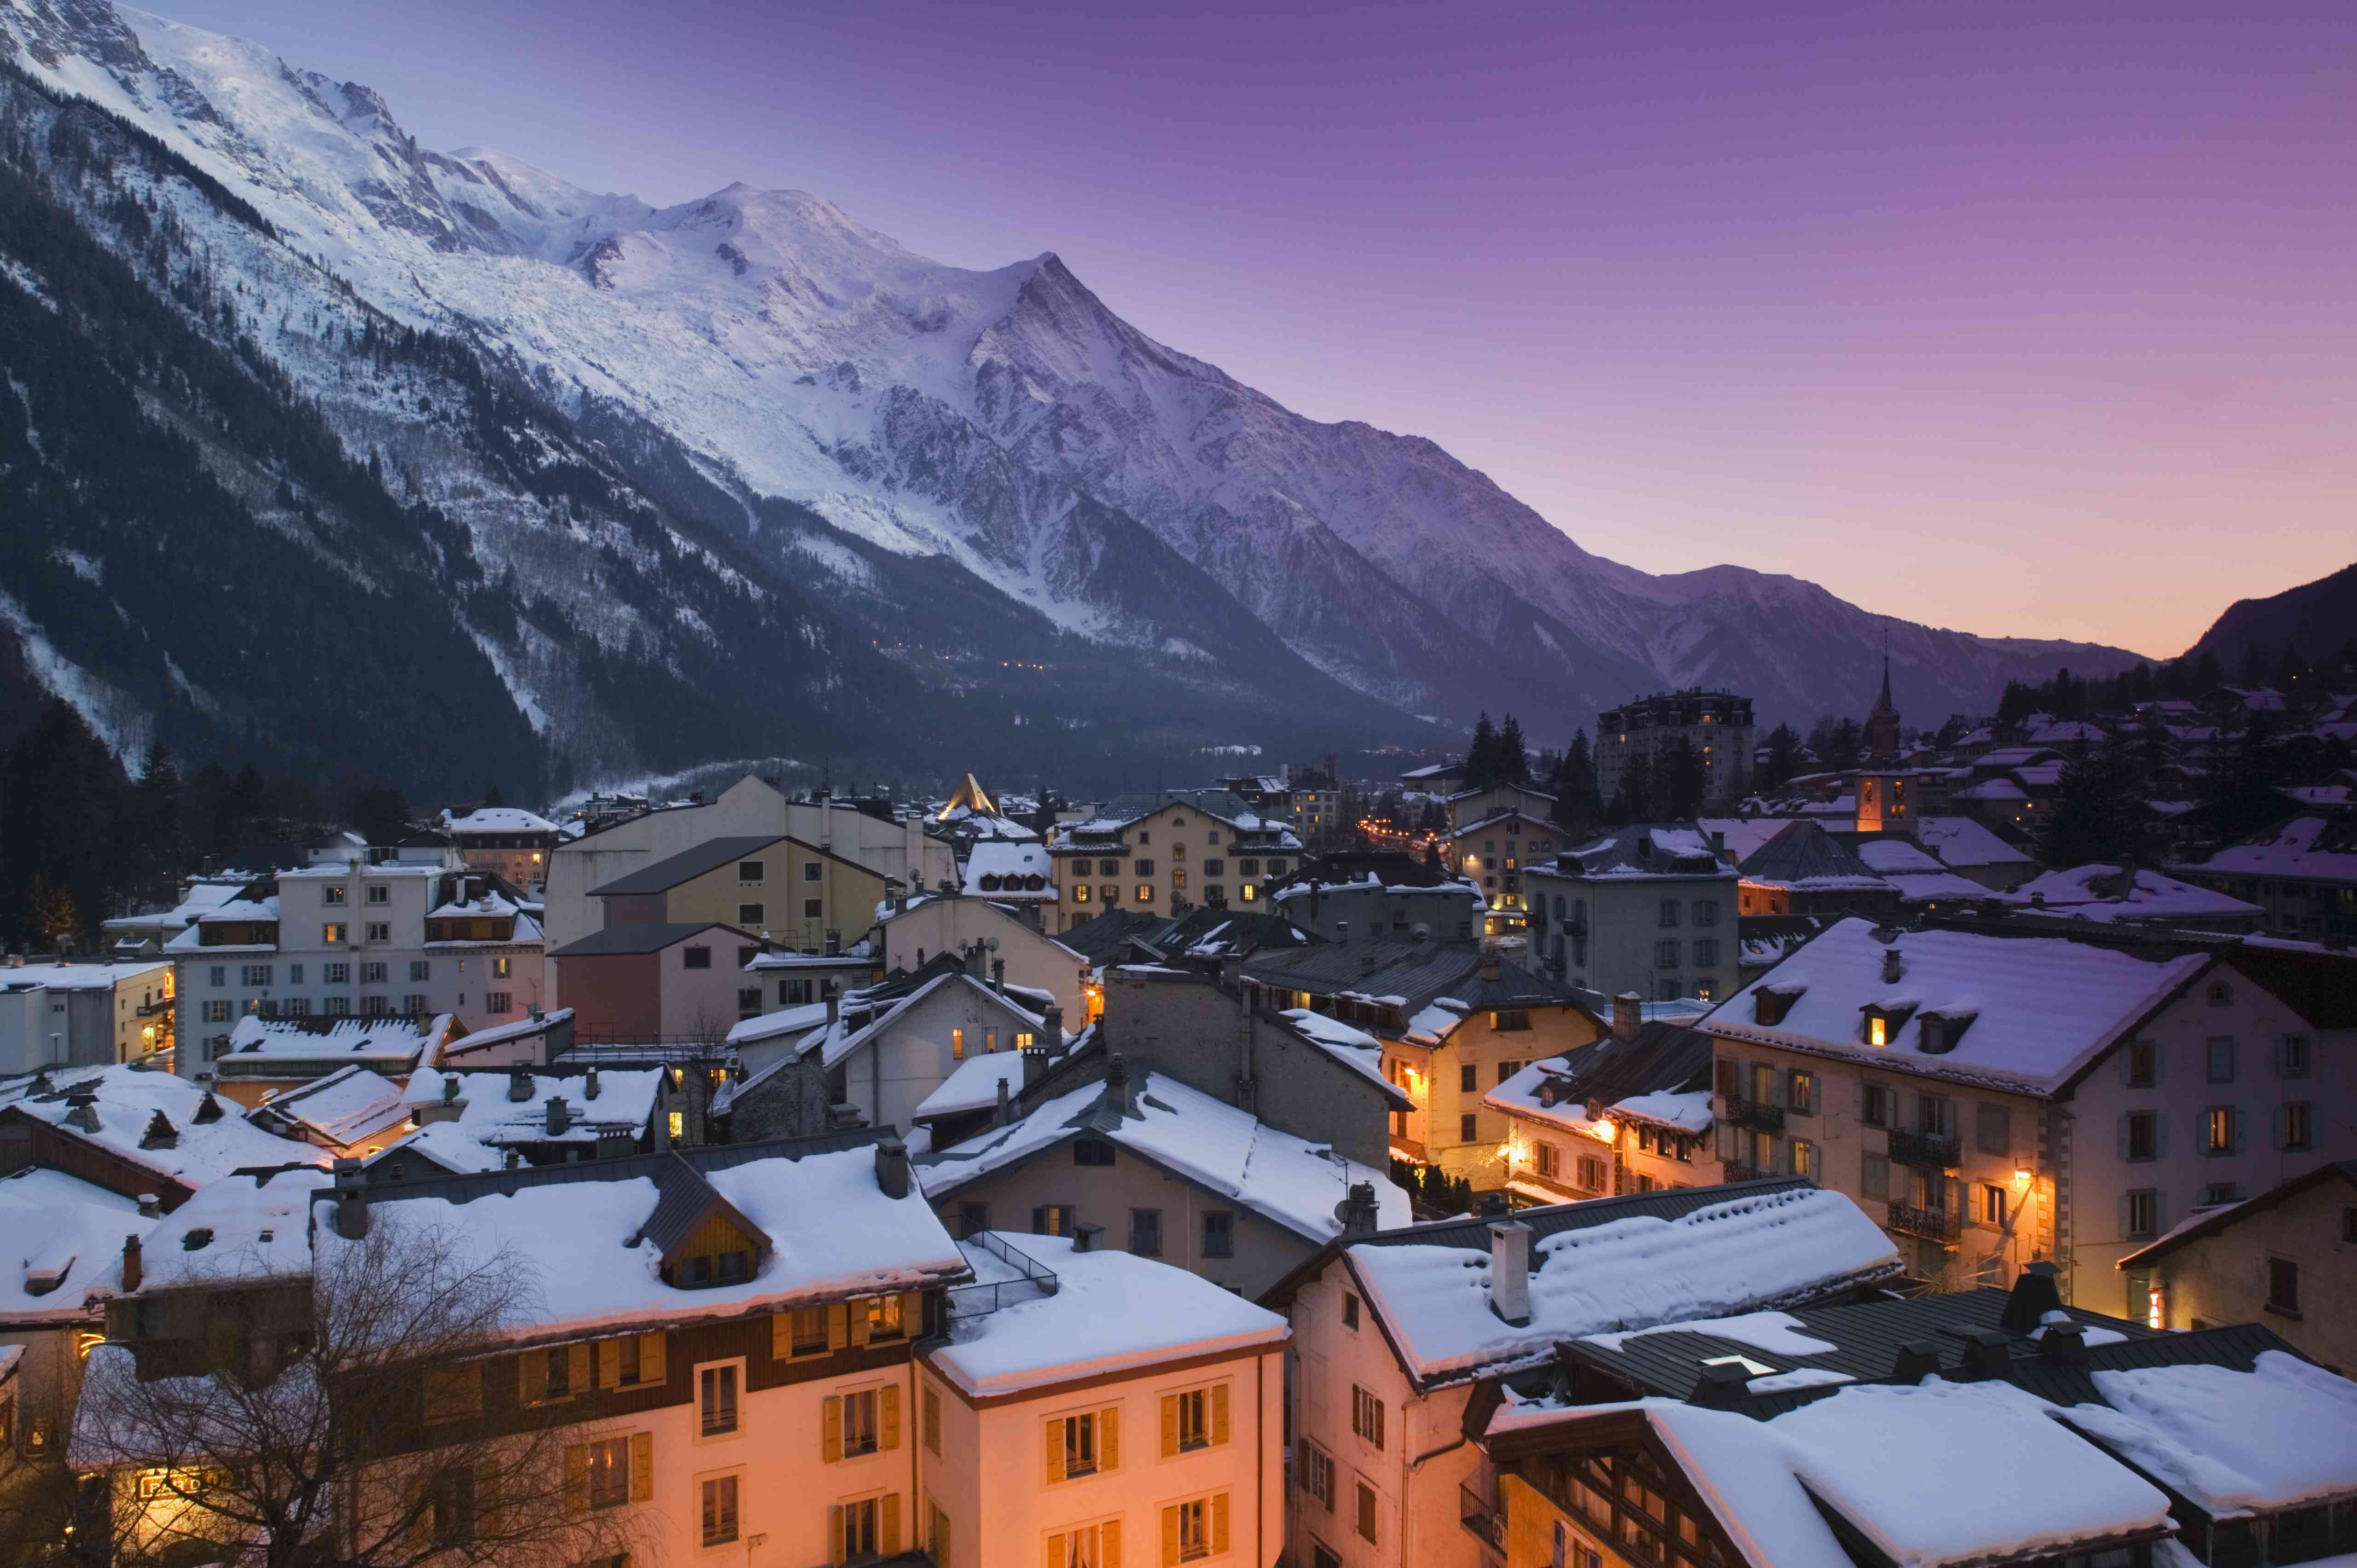 Snowy rooftops in Chamonix during a winter evening